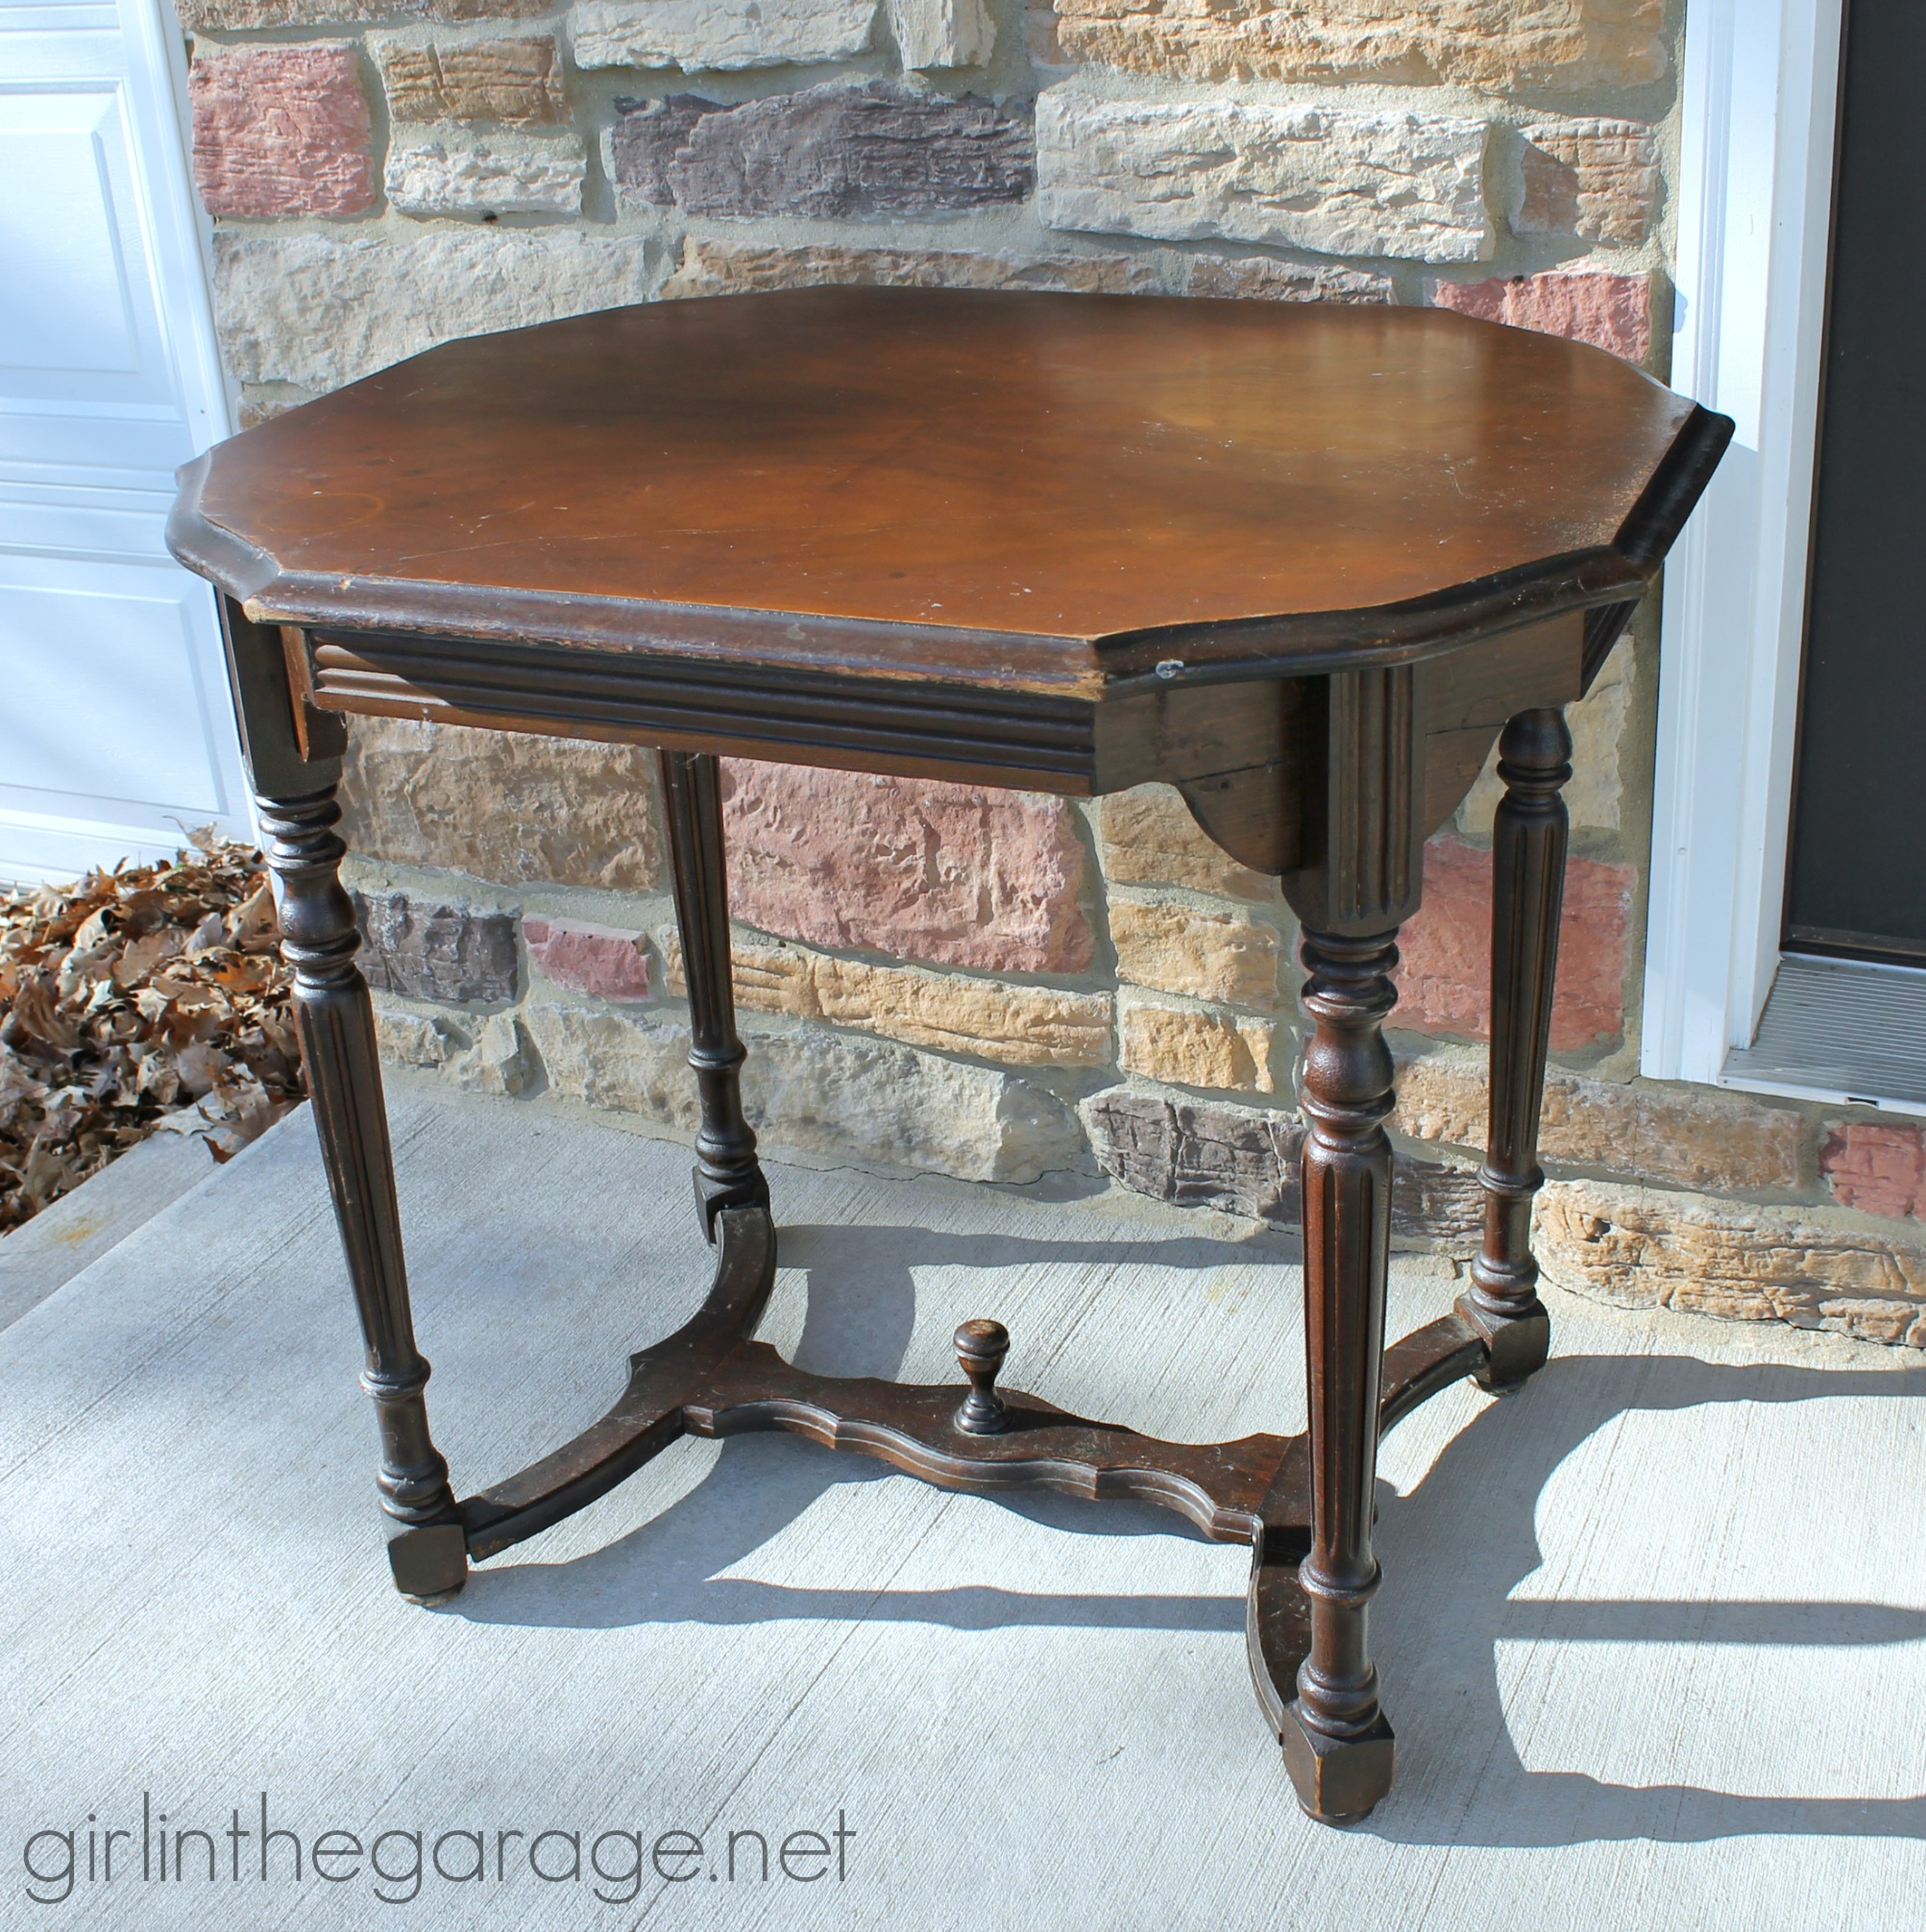 Antique table - Girl in the Garage